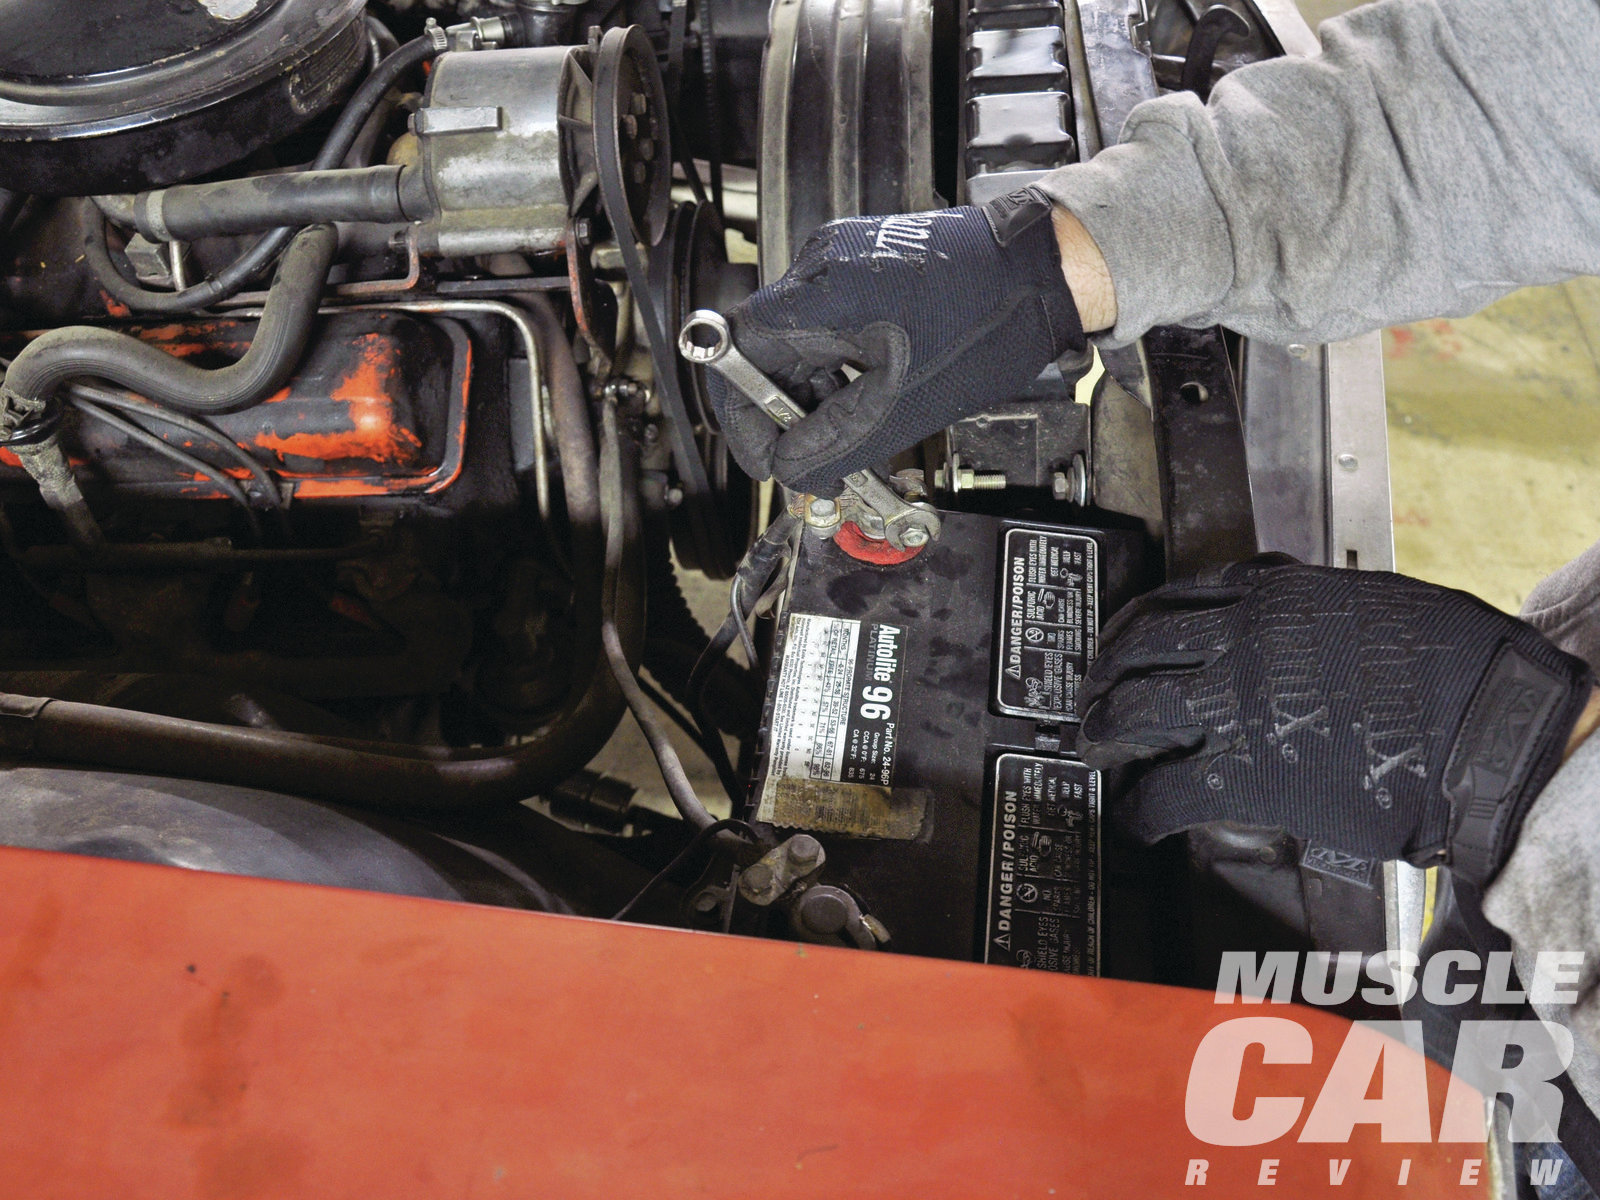 The very first thing to do when swapping engines is to disconnect the battery. Wearing some sort of mechanic's gloves, like these from Mechanix Wear, is recommended to avoid injury caused by contact with the battery's corrosive materials.